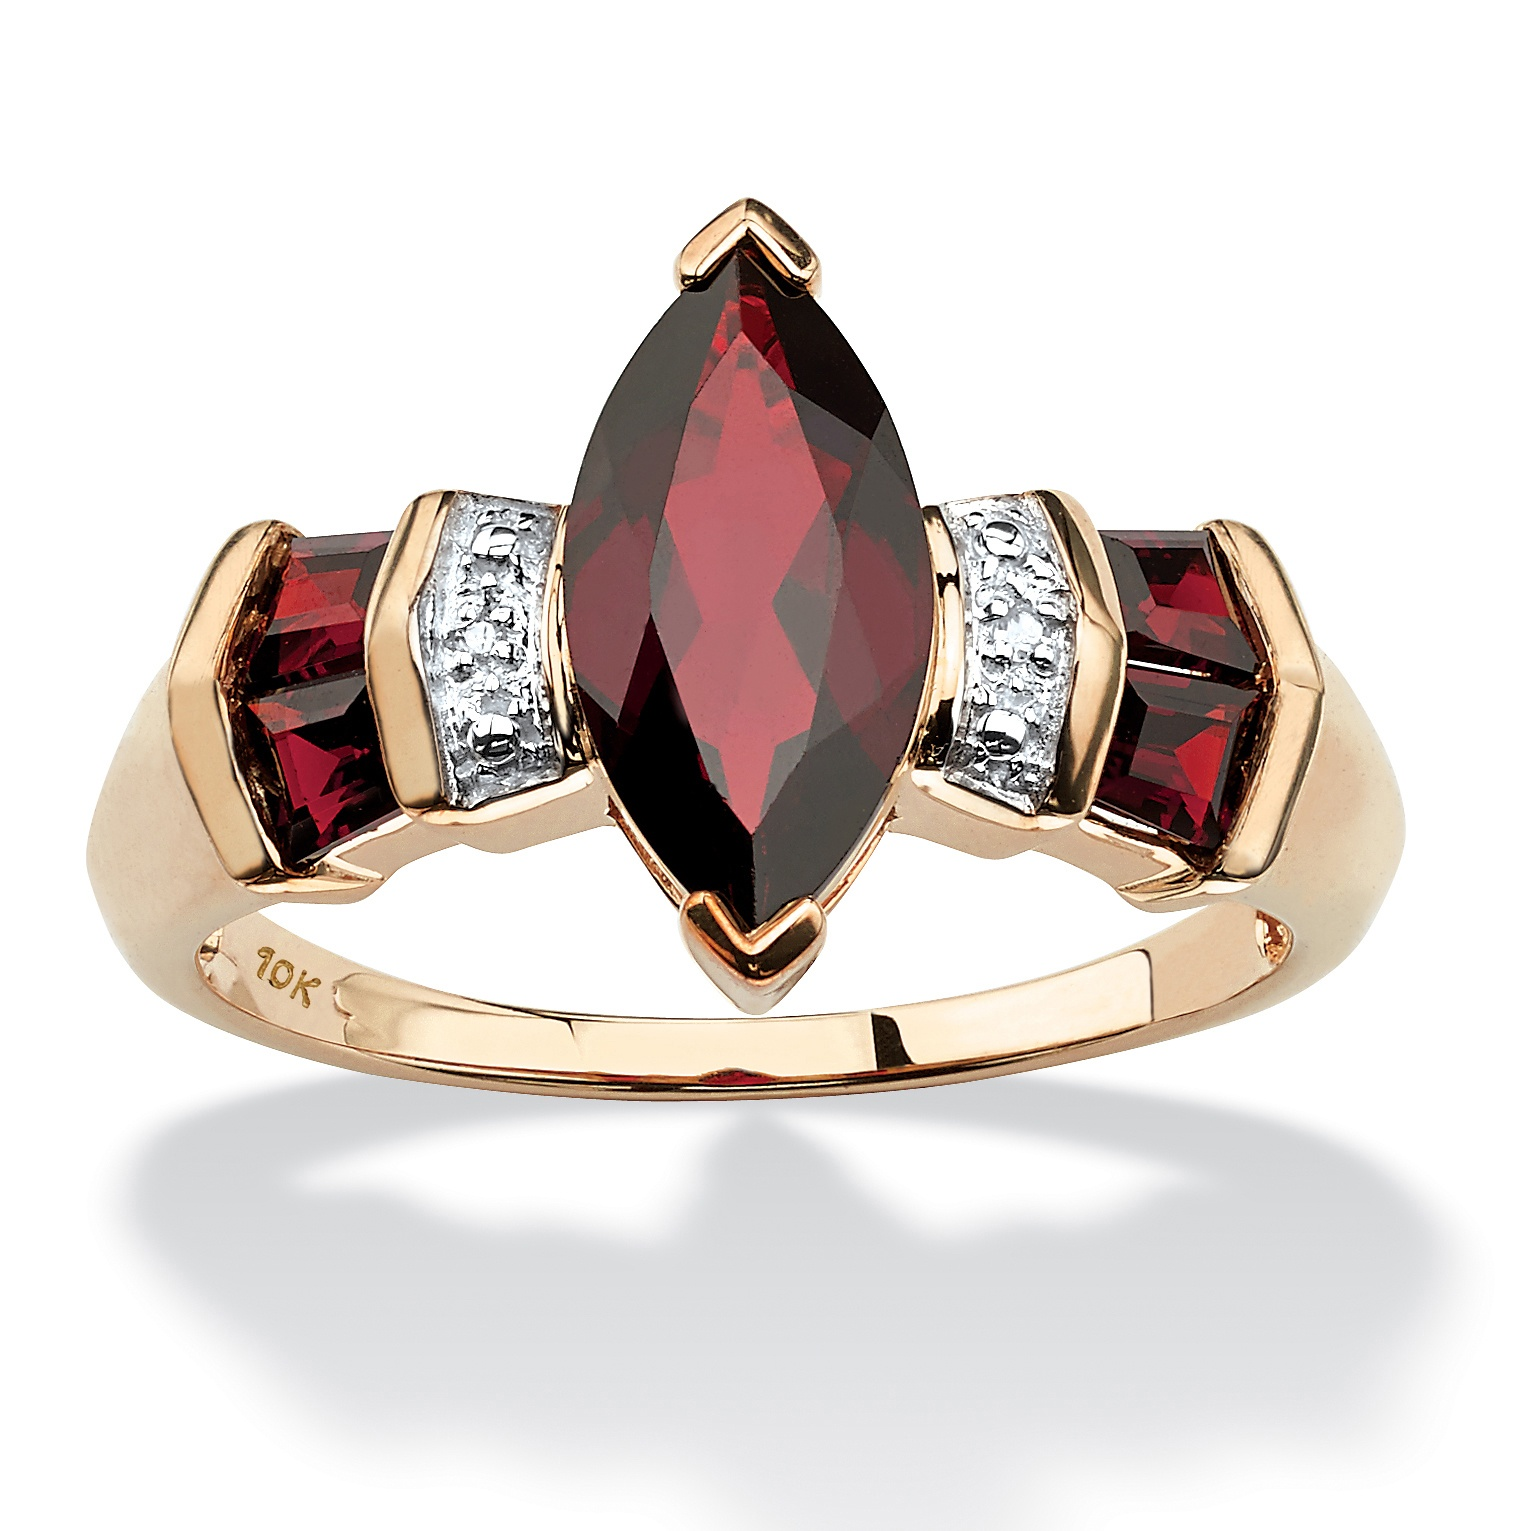 2.84 TCW Marquise-Cut Garnet and Diamond Accent Ring in 10k Gold by PalmBeach Jewelry